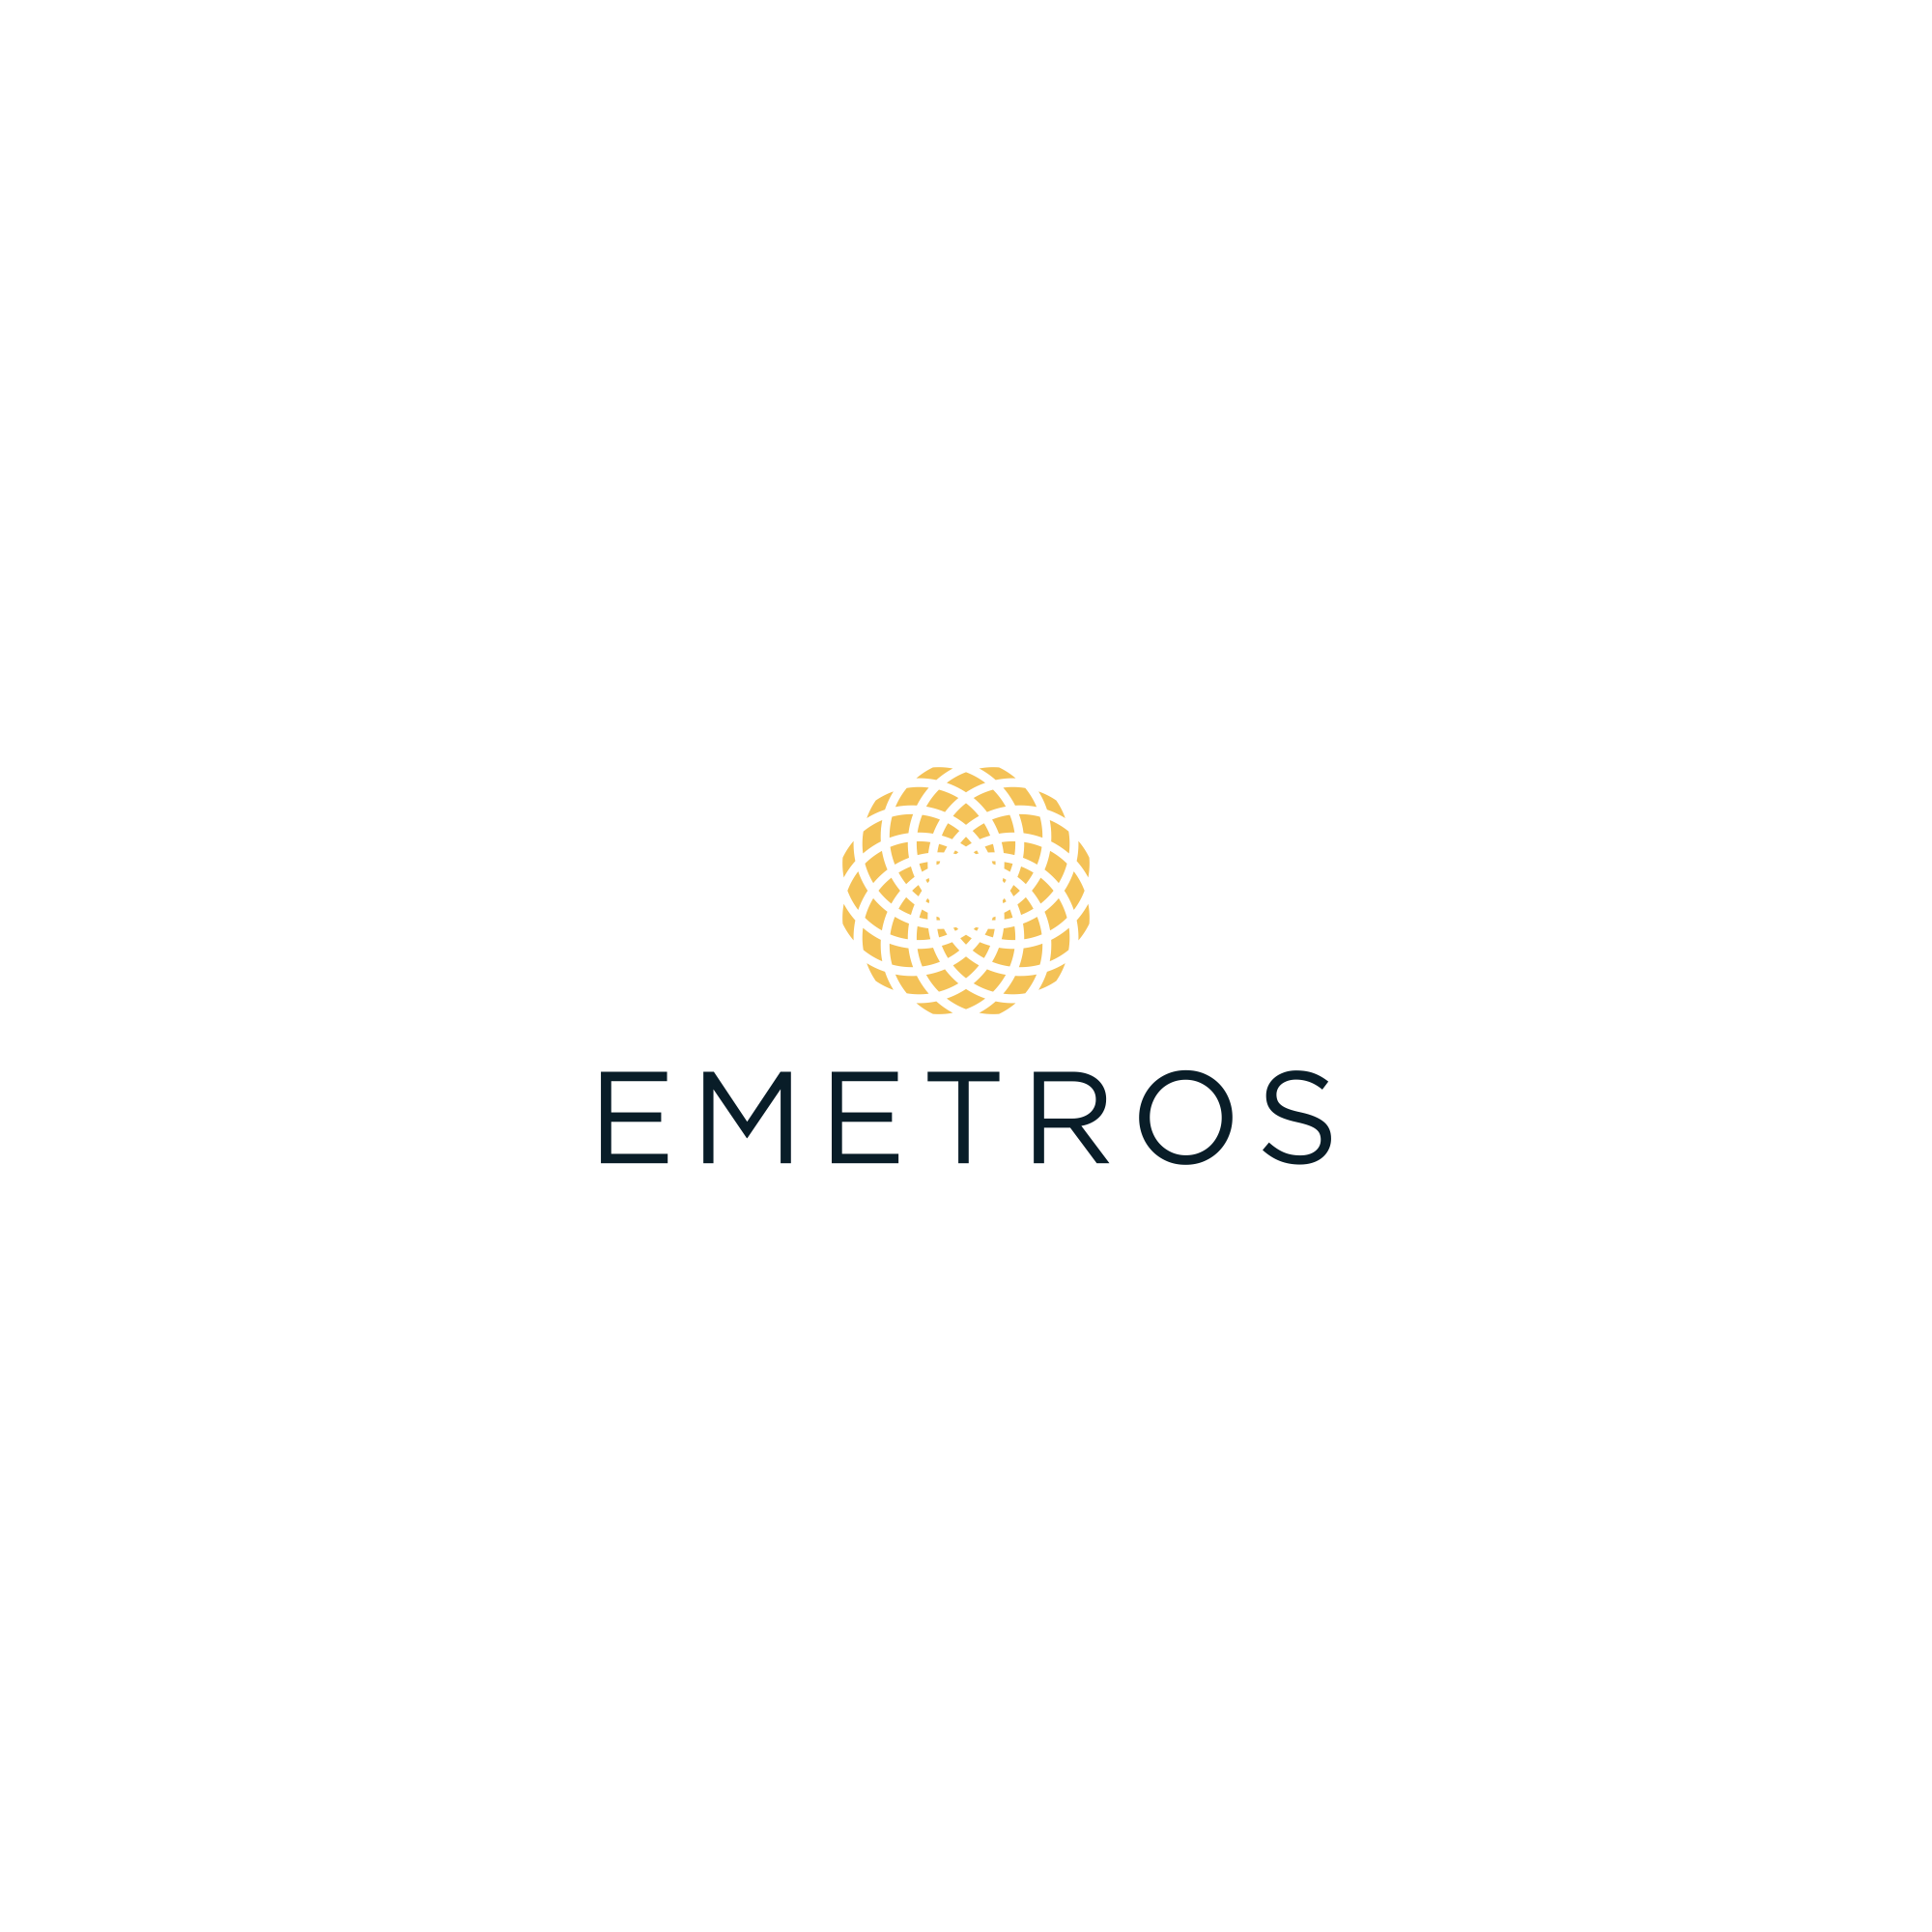 Design a creative logo with a hidden meaning for Emetros